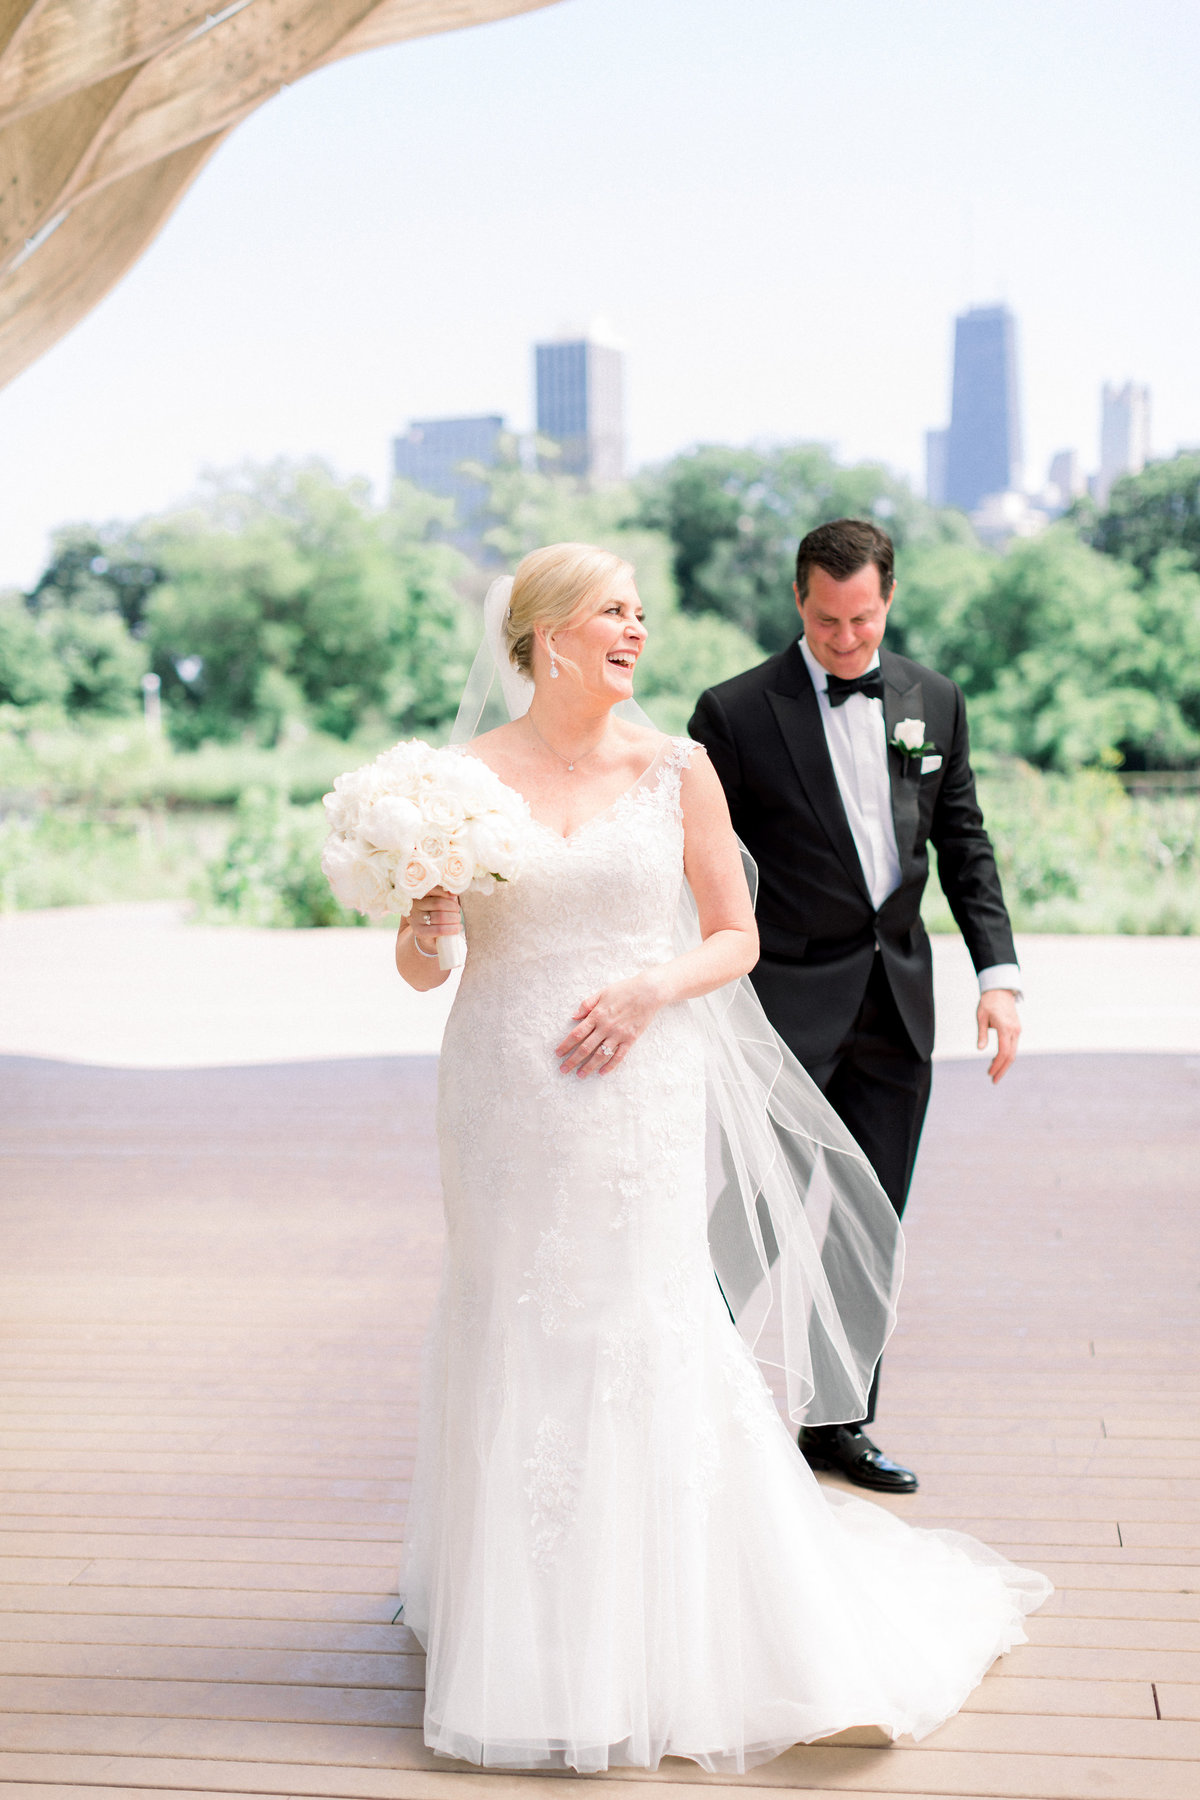 TiffaneyChildsPhotography-ChicagoWeddingPhotographer-Christine+Patrick-MundeleinAuditoriumWedding-BridalPortraits-38